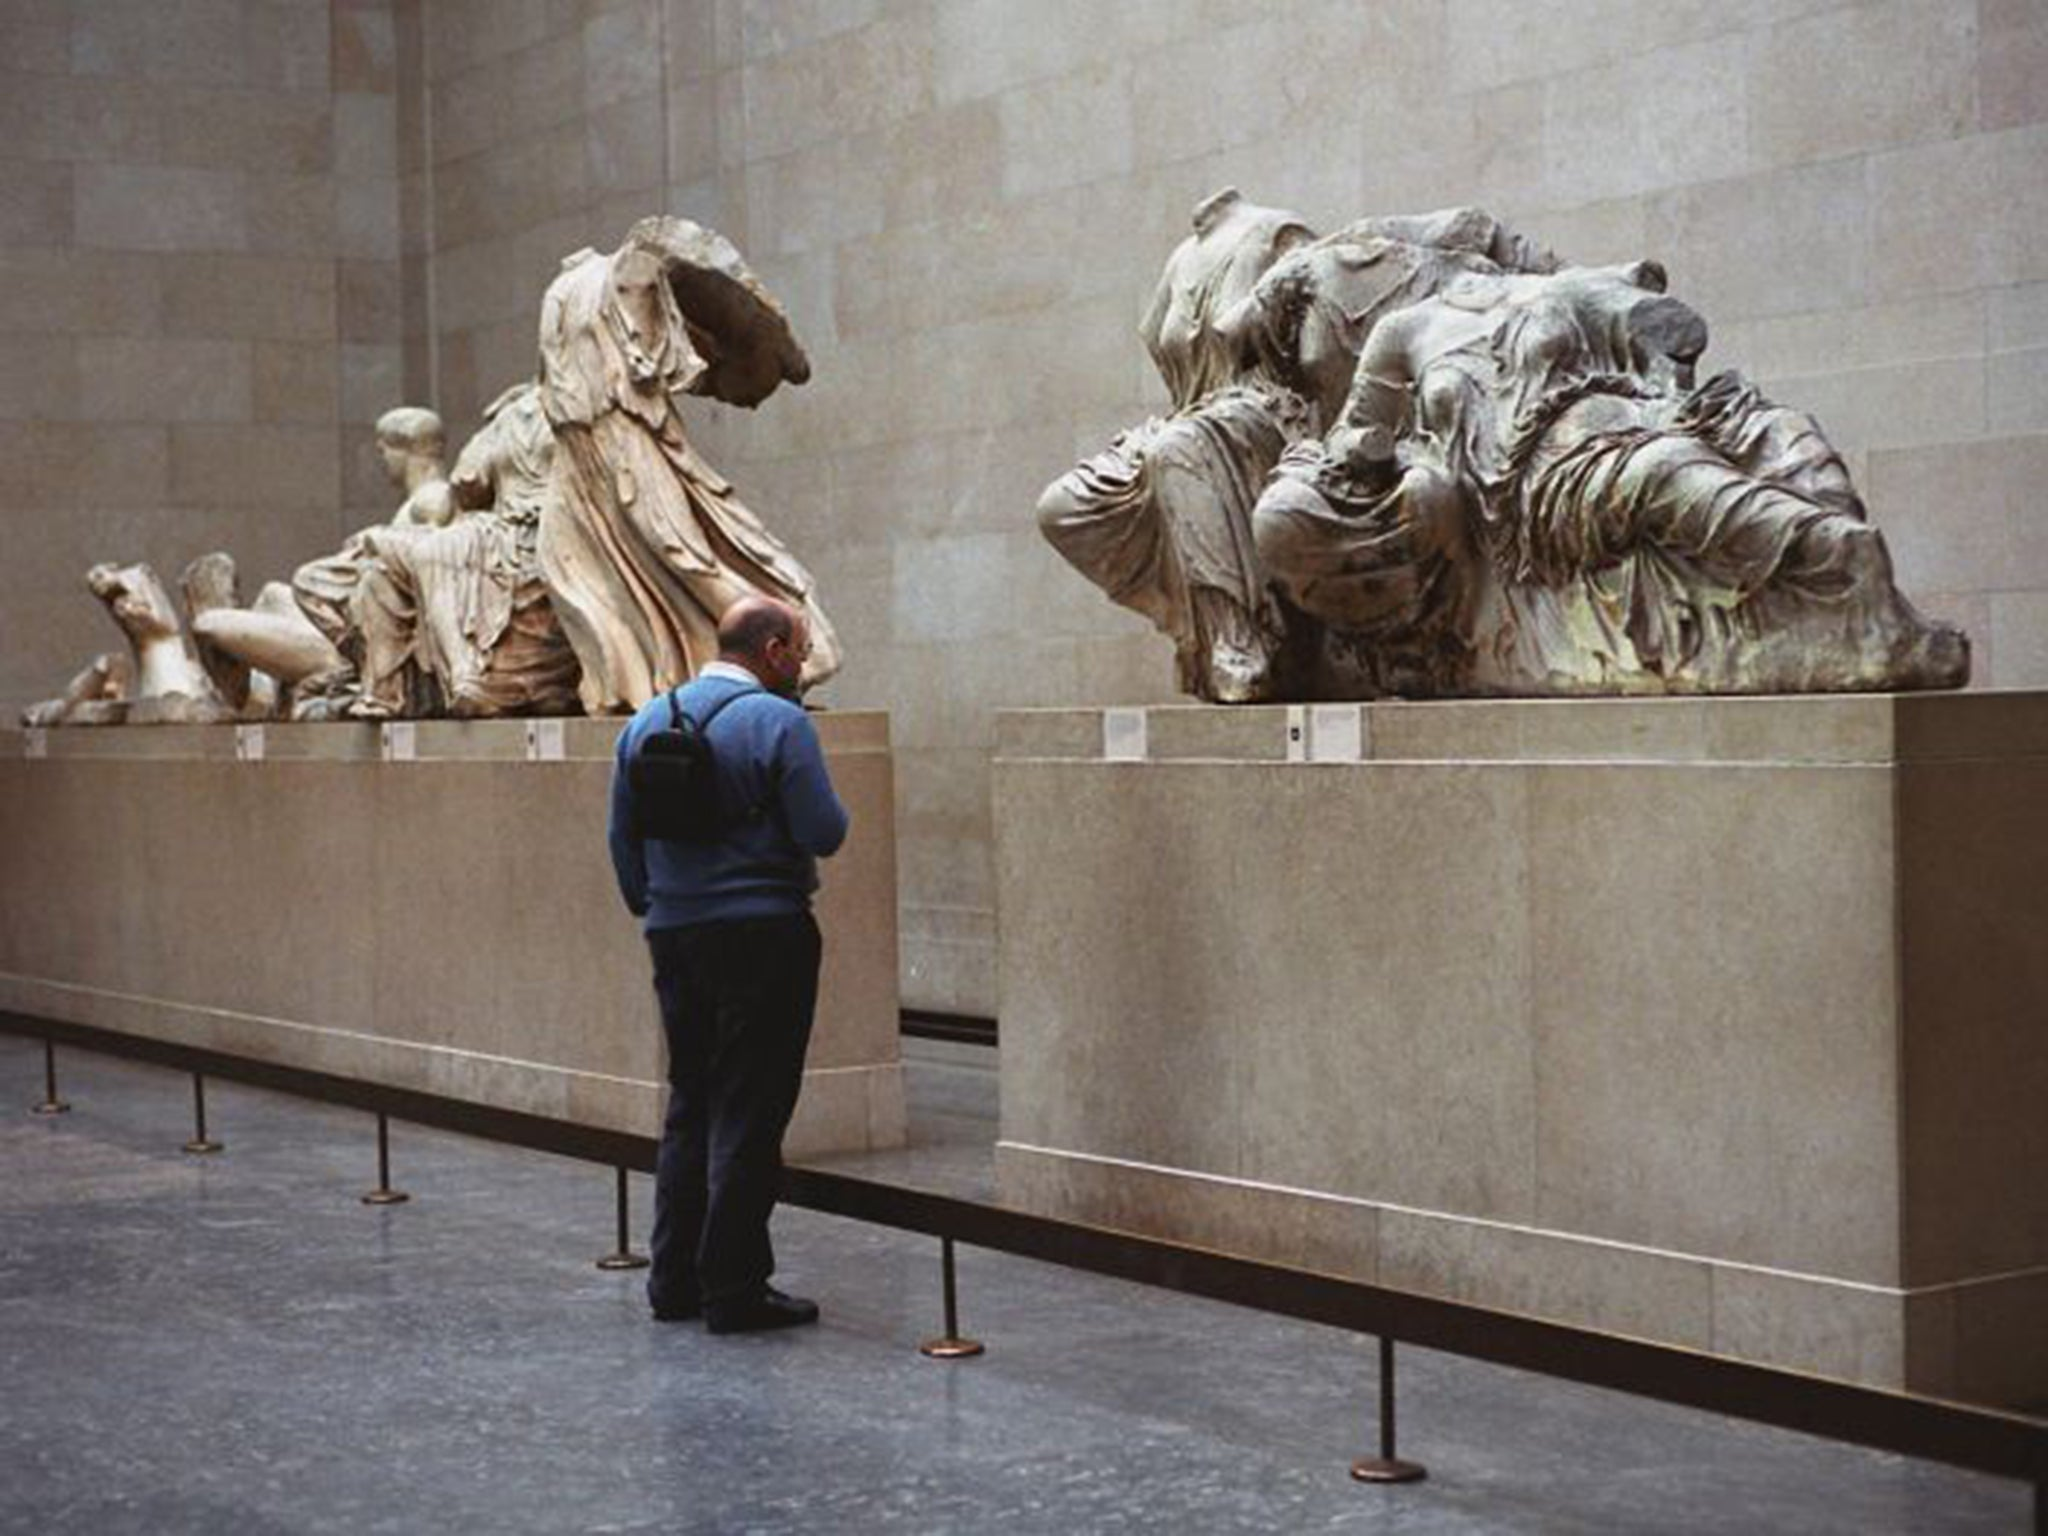 the parthenon marbles should not be returned to greece Do you think that the parthenon marbles should be returned to greece yes no not sure if you  the marbles now belong to humanity, not to greece.